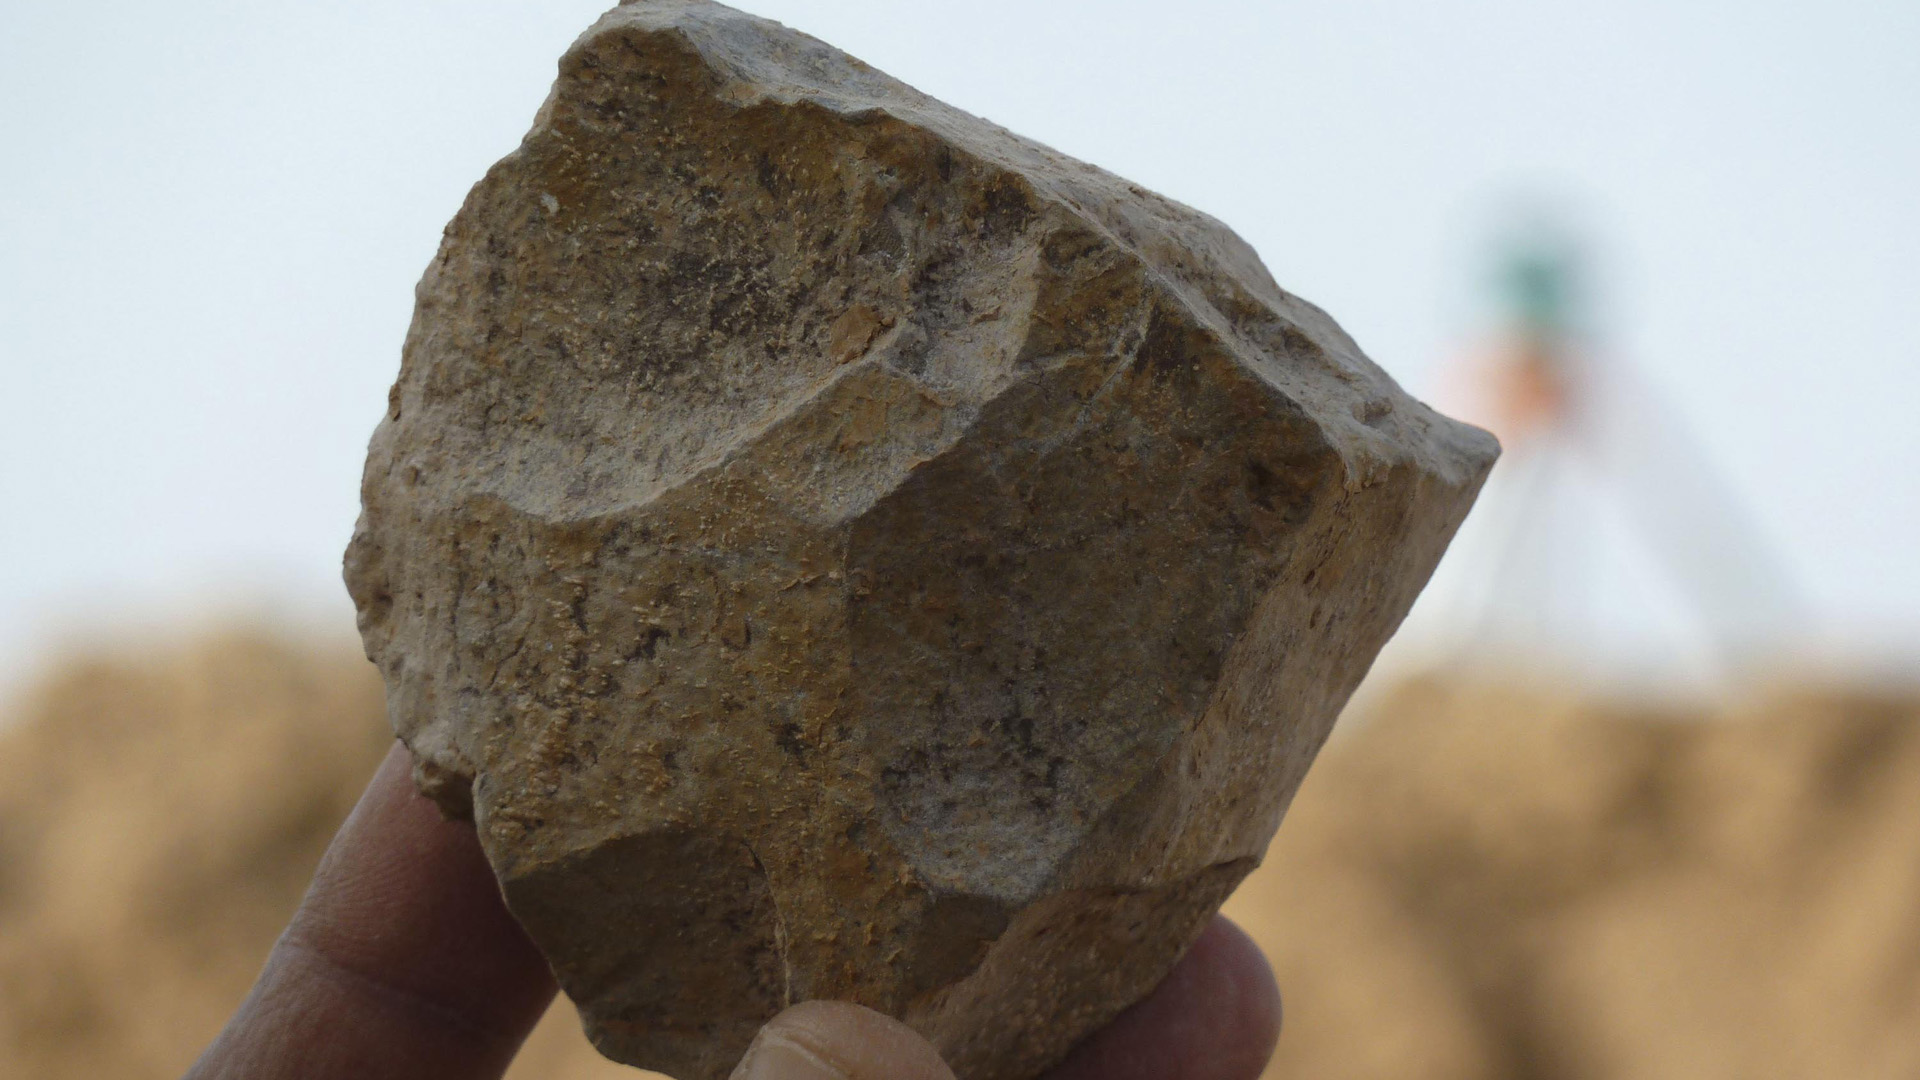 About 250 stone tools were found in Algeria, and the discovery calls into question the long-held theory that humanity emerged in East Africa. (Credit: Mohamed Sahnouni/AFP/Getty Image)